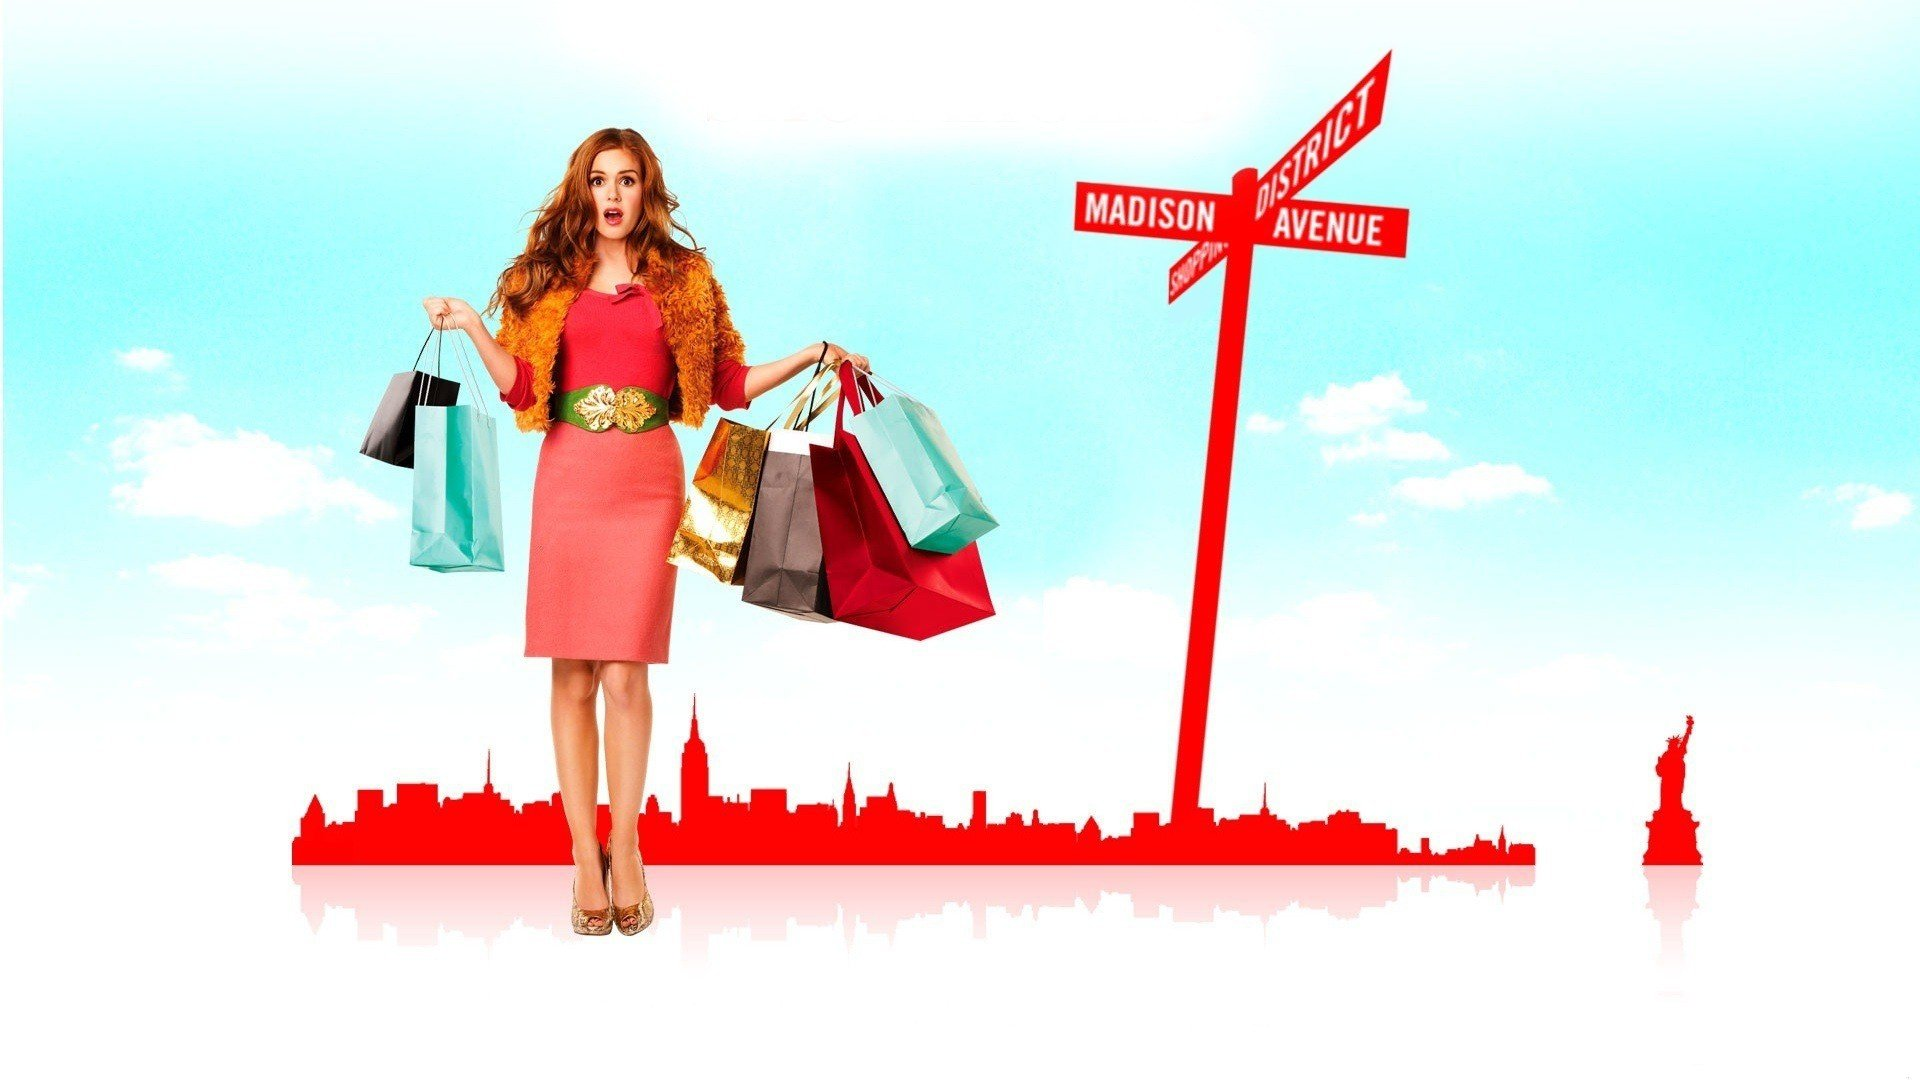 Confessions of a Shopaholic HD Wallpaper Background Image 1920x1080